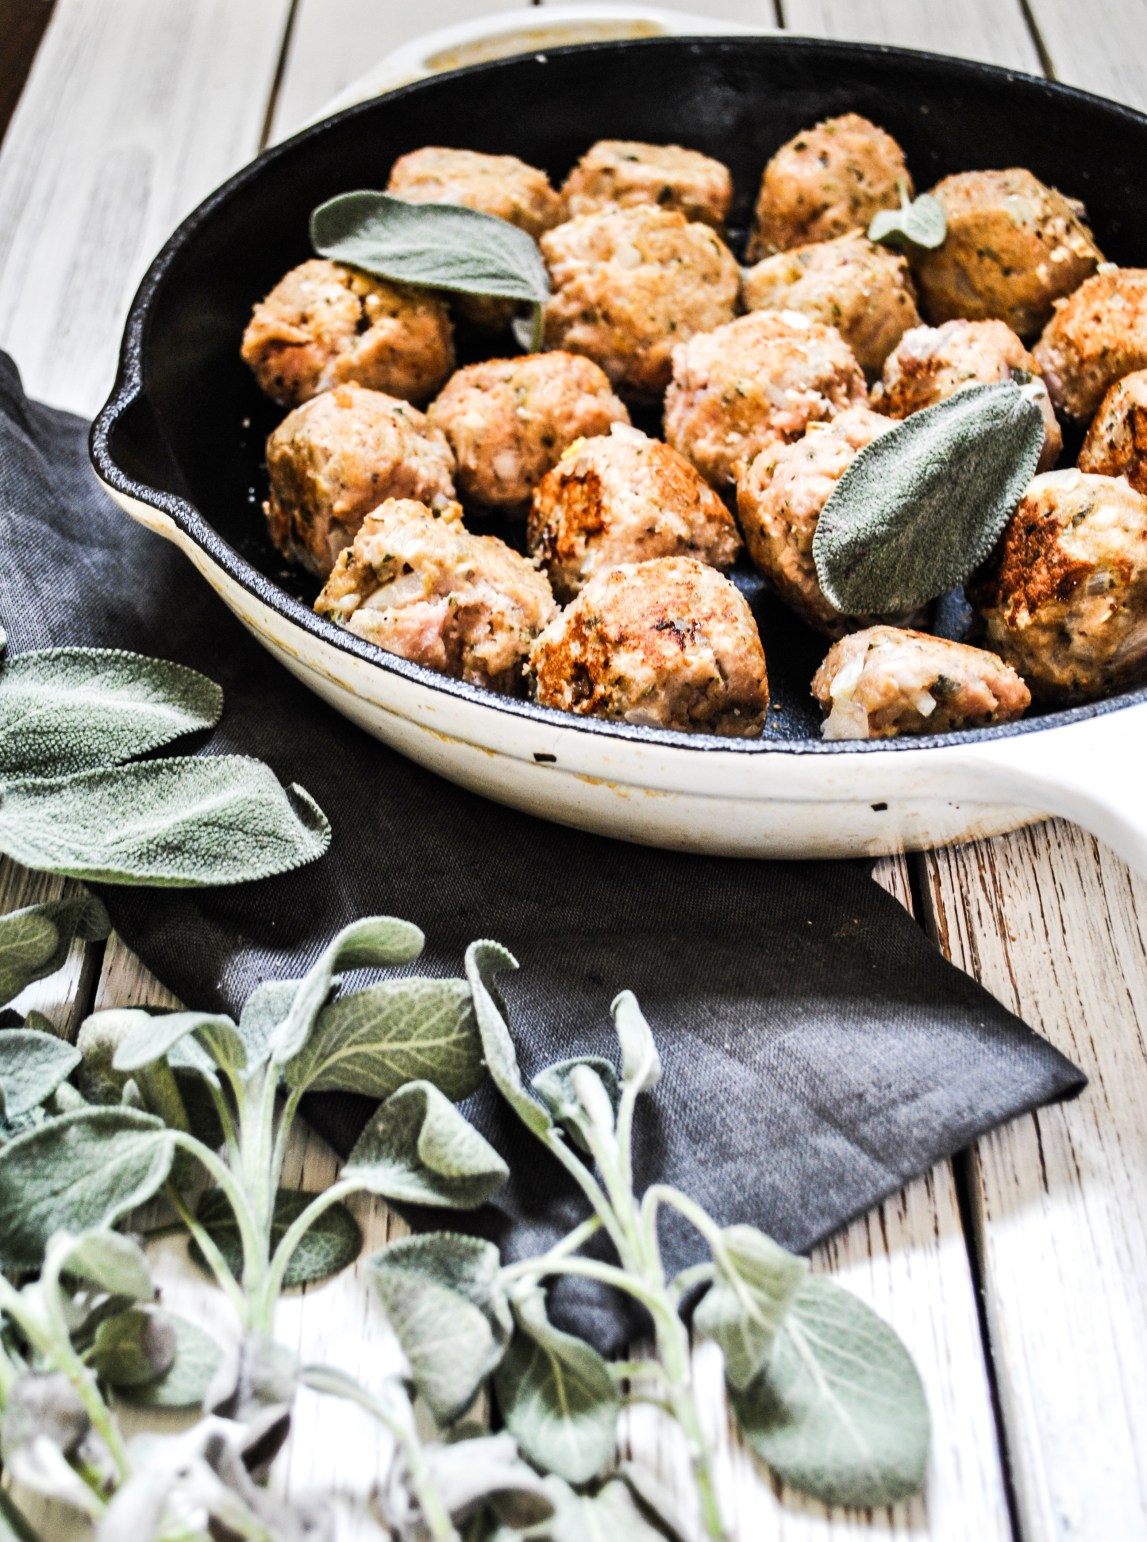 Lifestyle Blogger Chocolate and Lace shares her recipe for Turkey and Sage Meatballs.